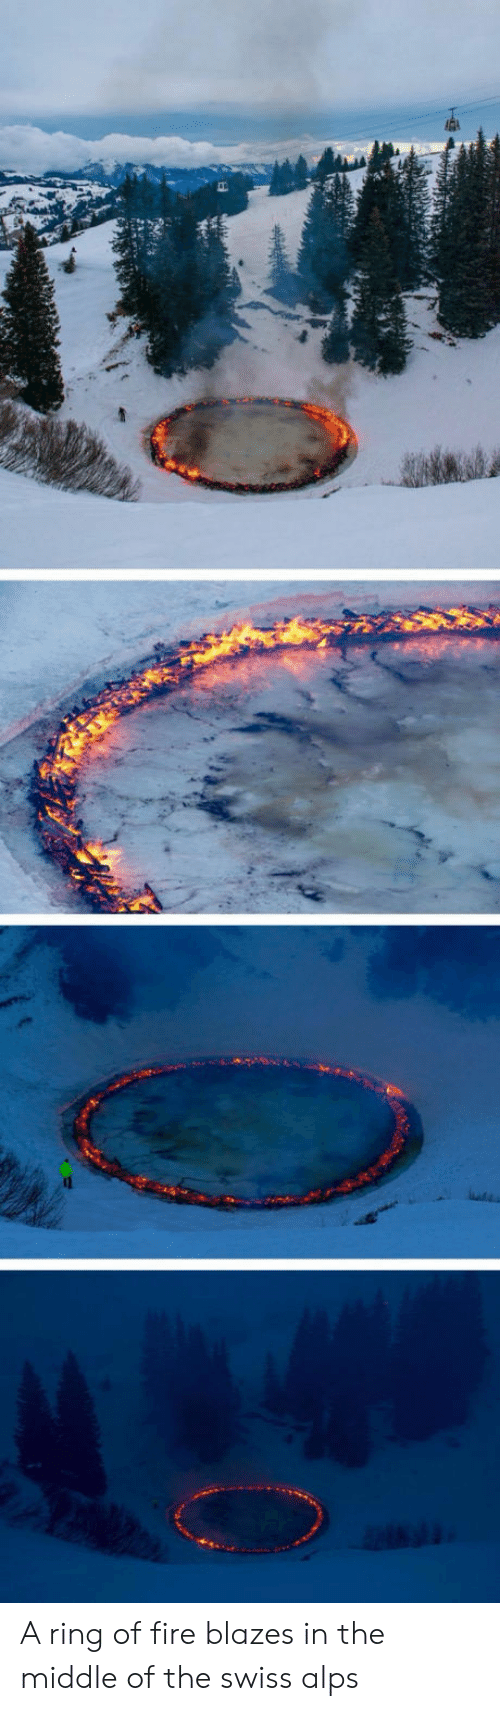 ring of fire: A ring of fire blazes in the middle of the swiss alps